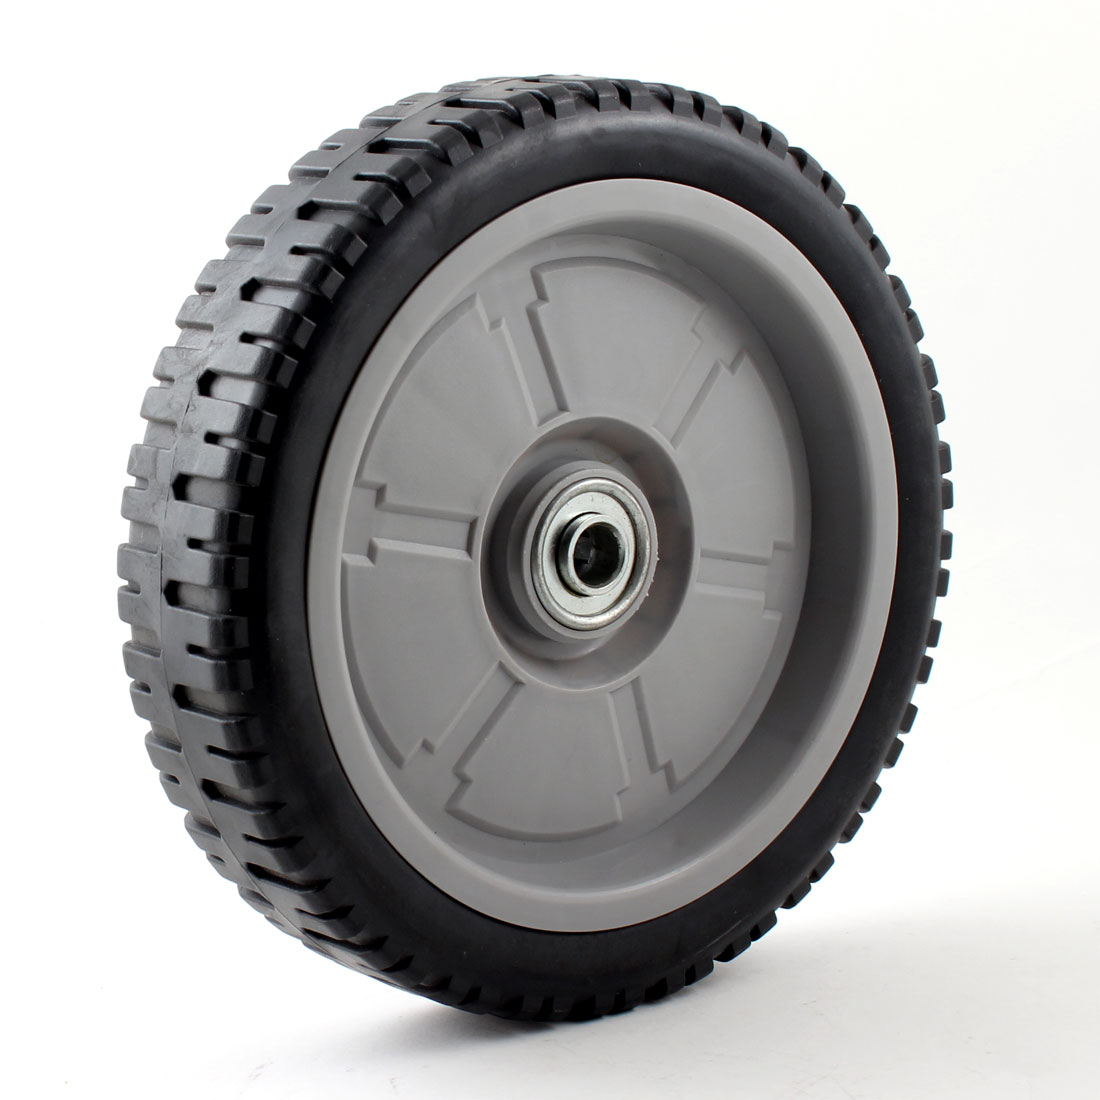 "0.6"" Diameter Axle Lawnmower Wheel Turf Saver Tire 8.1"" x 2.2"""